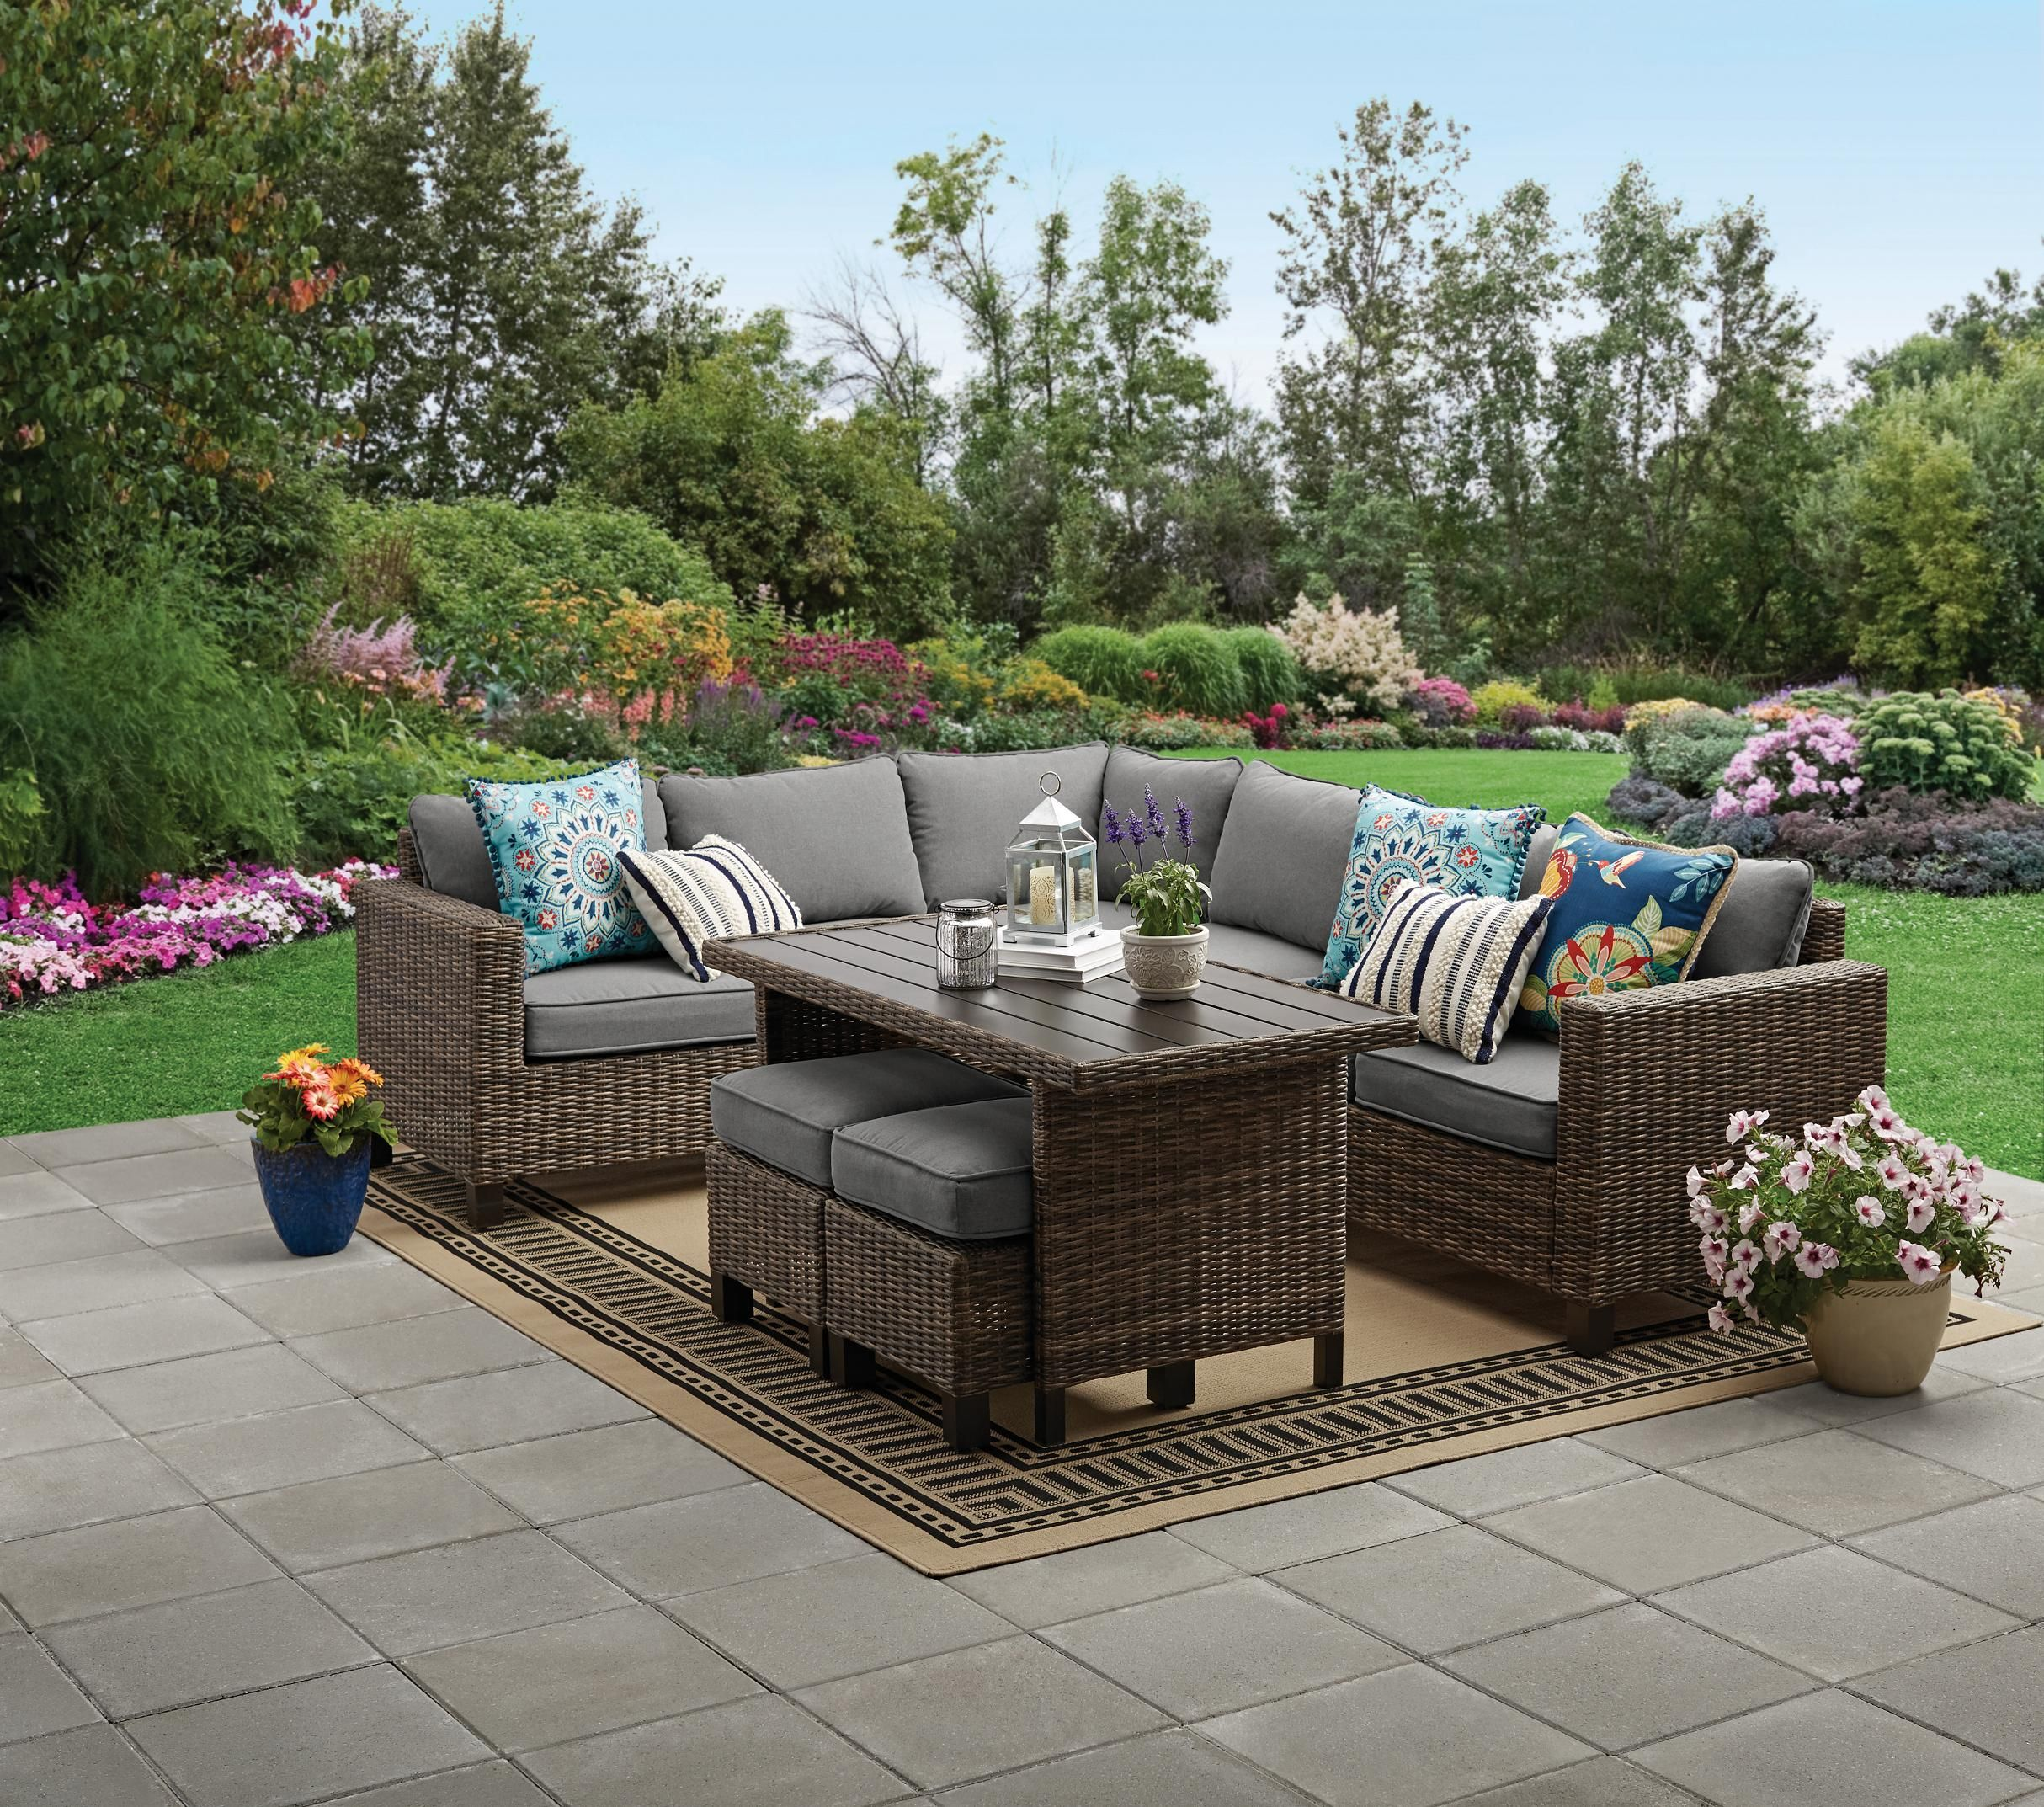 Better Homes Gardens Brookbury 5 Piece Patio Wicker Sectional Set Walmart Com In 2020 Backyard Furniture Outdoor Furniture Sets Outdoor Seating Set